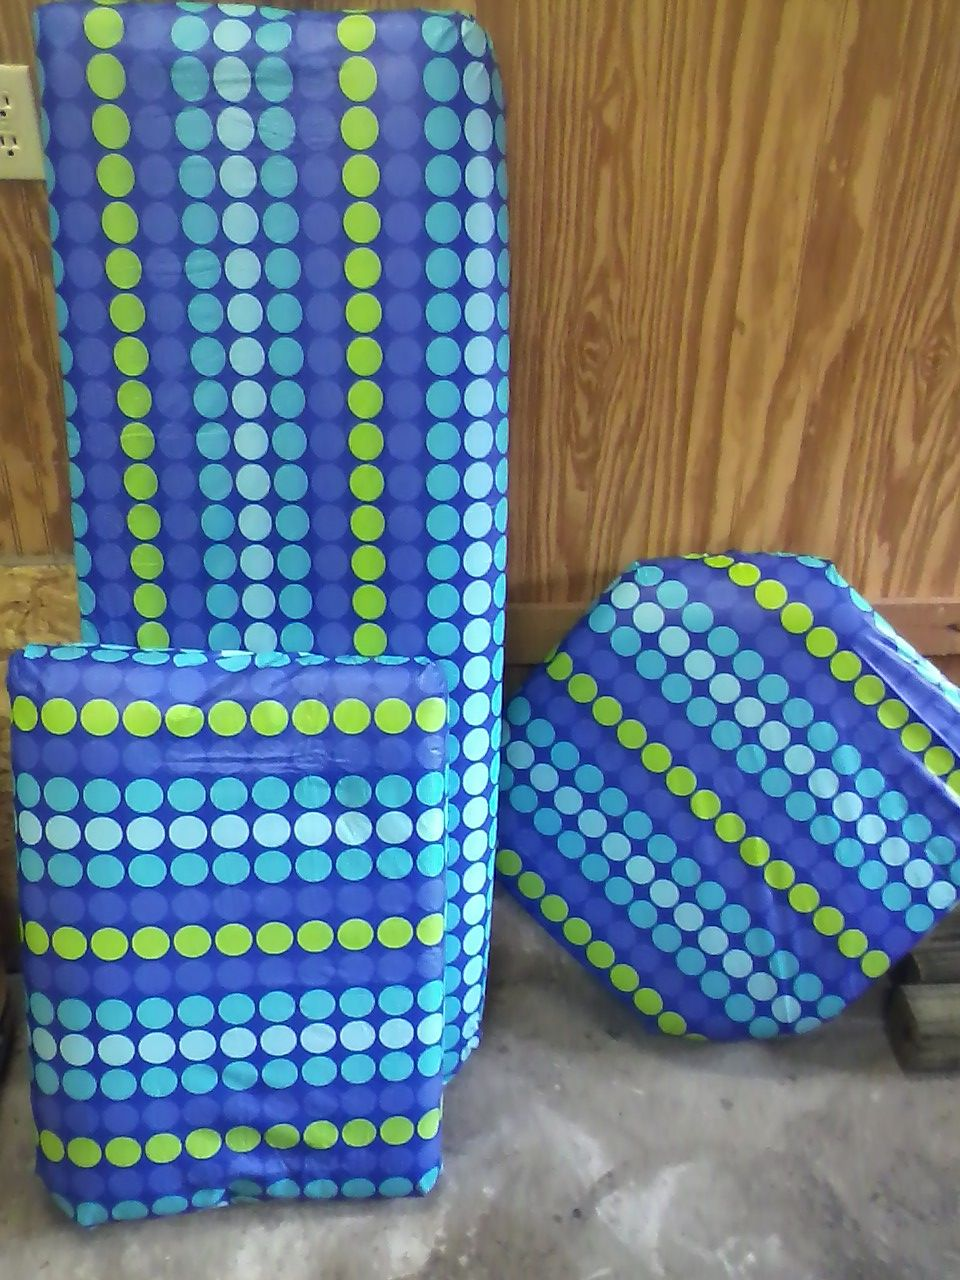 DIY Boat Cushions for cheap! I used vinyl tablecloths from